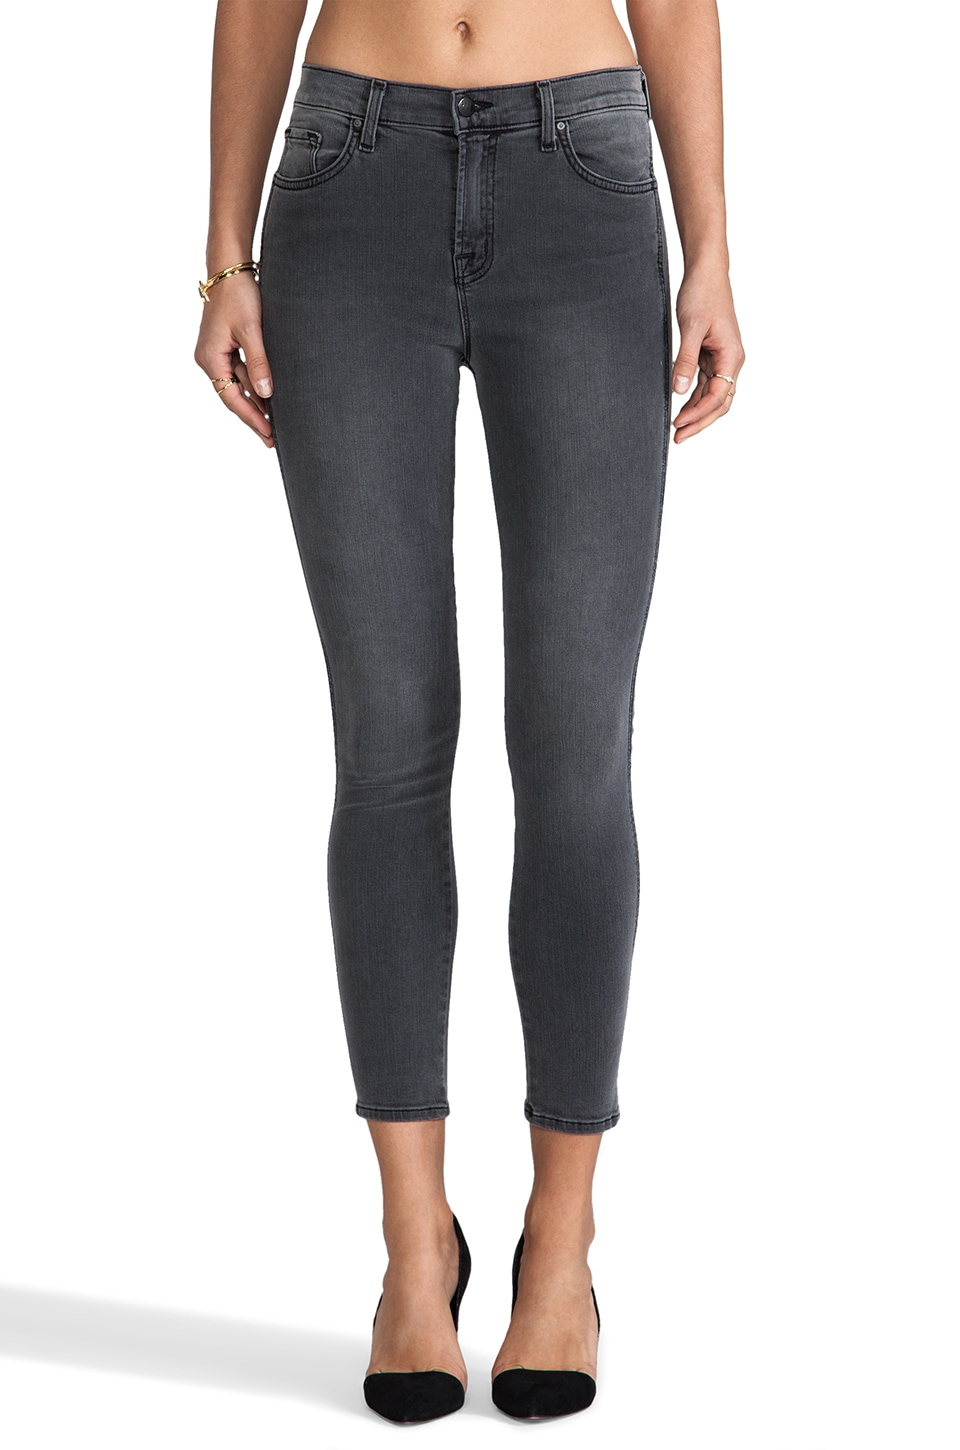 J Brand Bree High Rise Crop in Nightbird